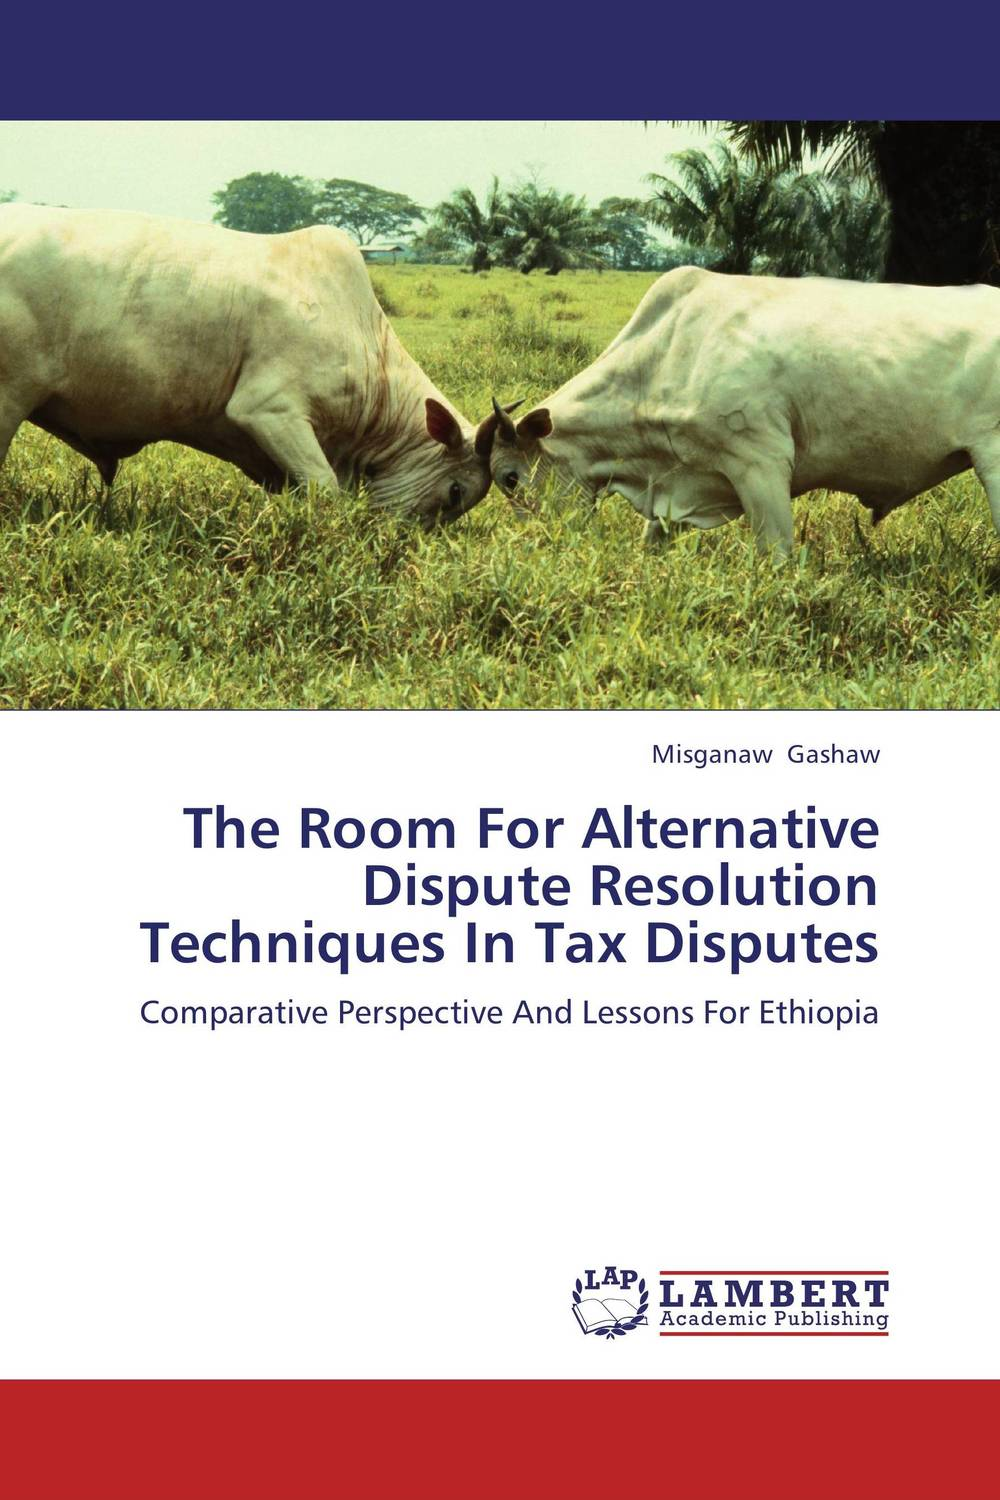 The Room For Alternative Dispute Resolution Techniques In Tax Disputes